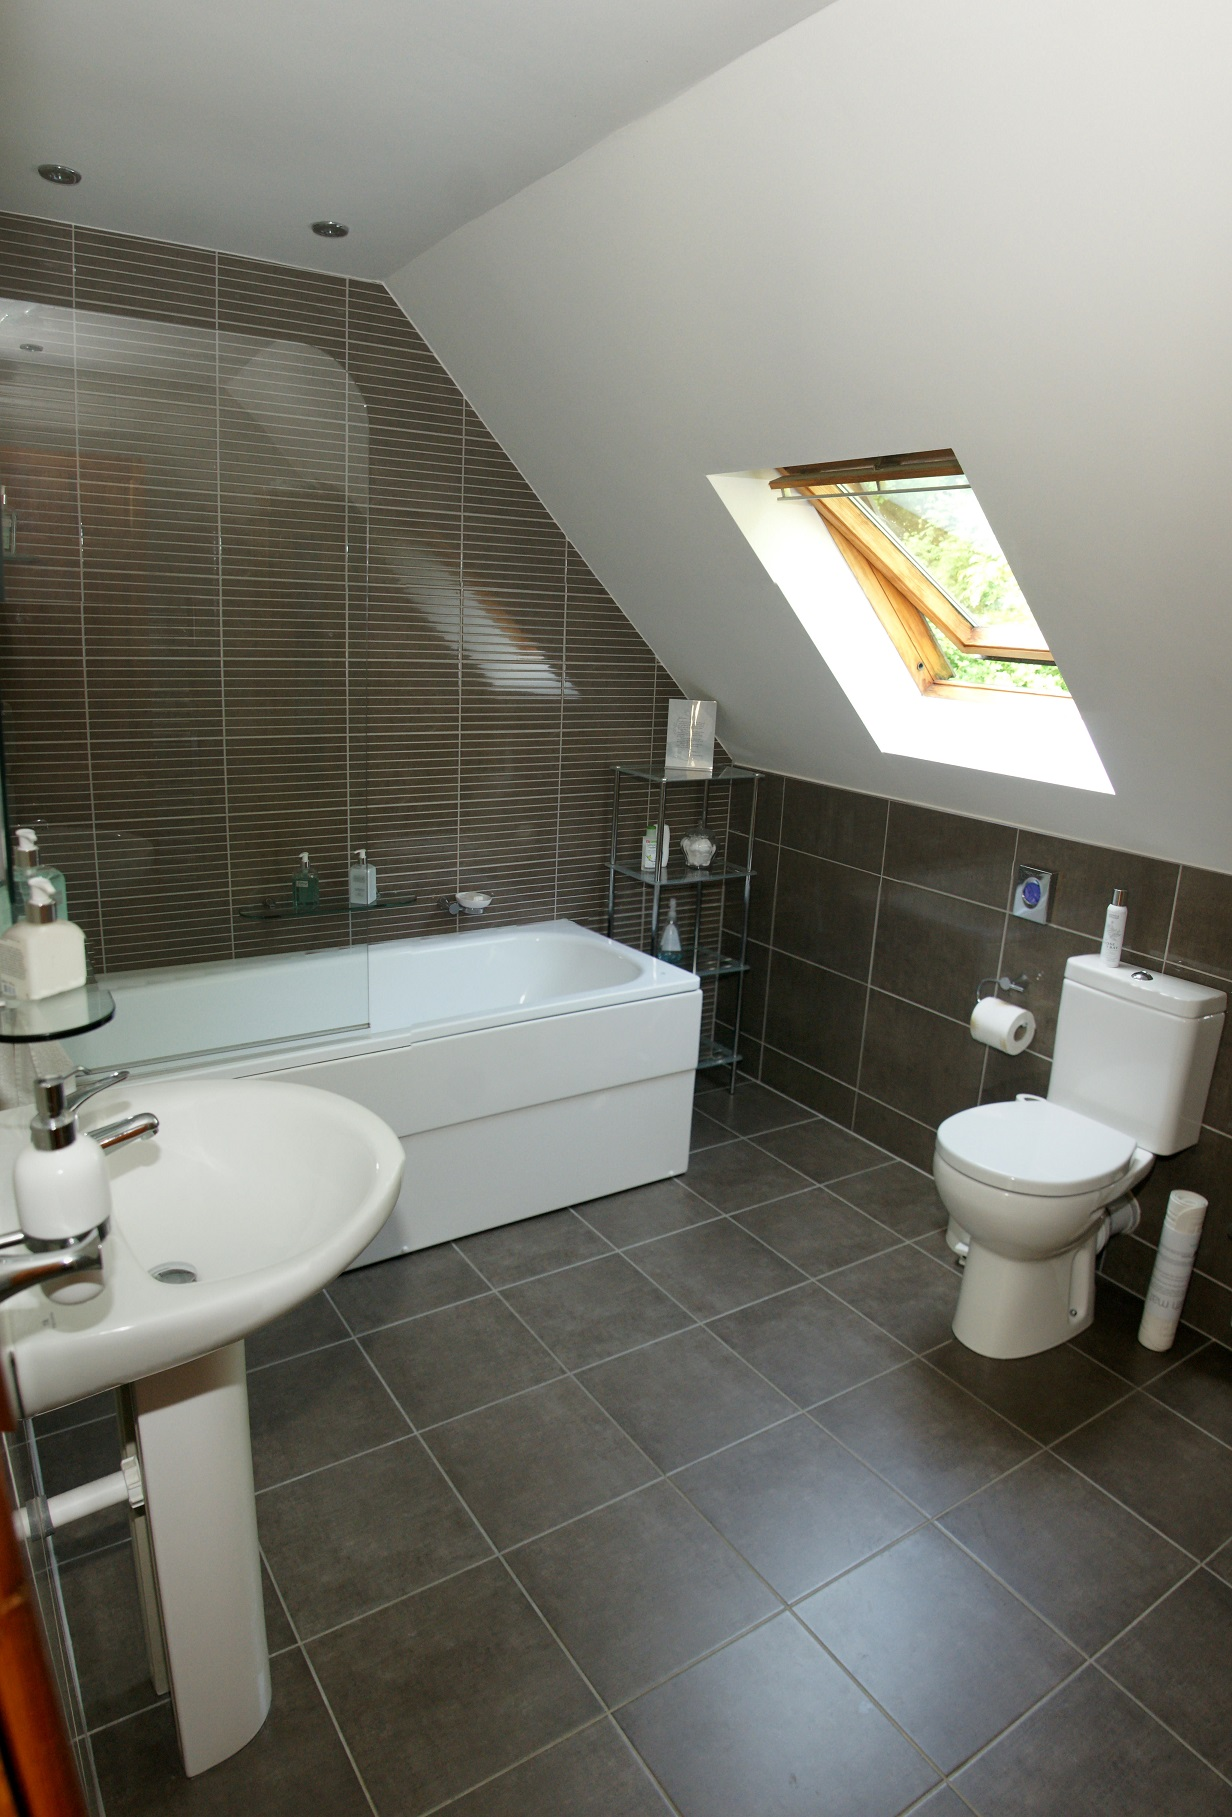 Spacious, modern private bathroom